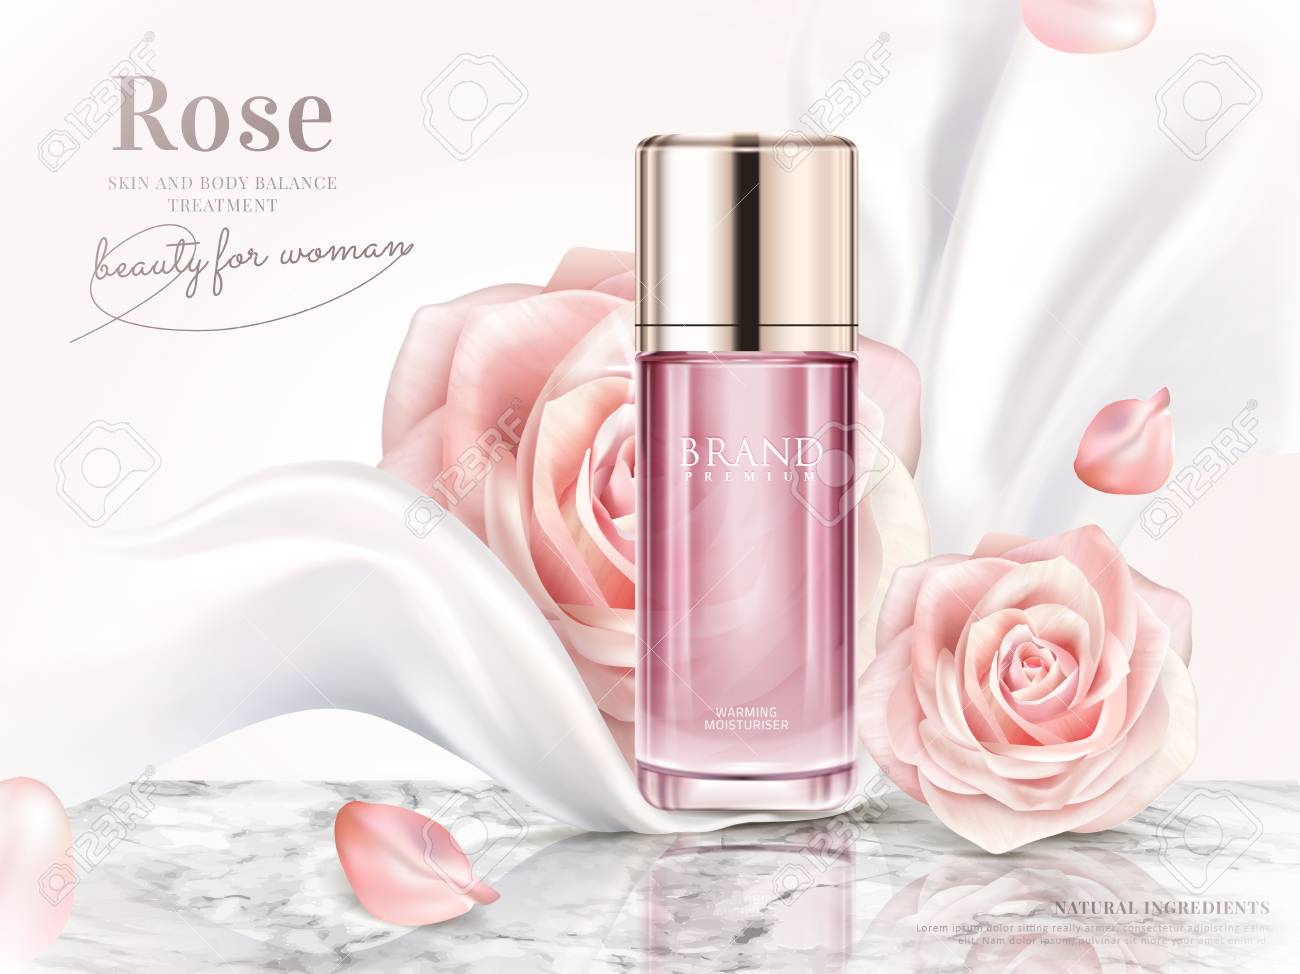 Rose toner ads, elegant cosmetic advertising with roses petals and pearl white chiffon in 3d illustration - 89702164